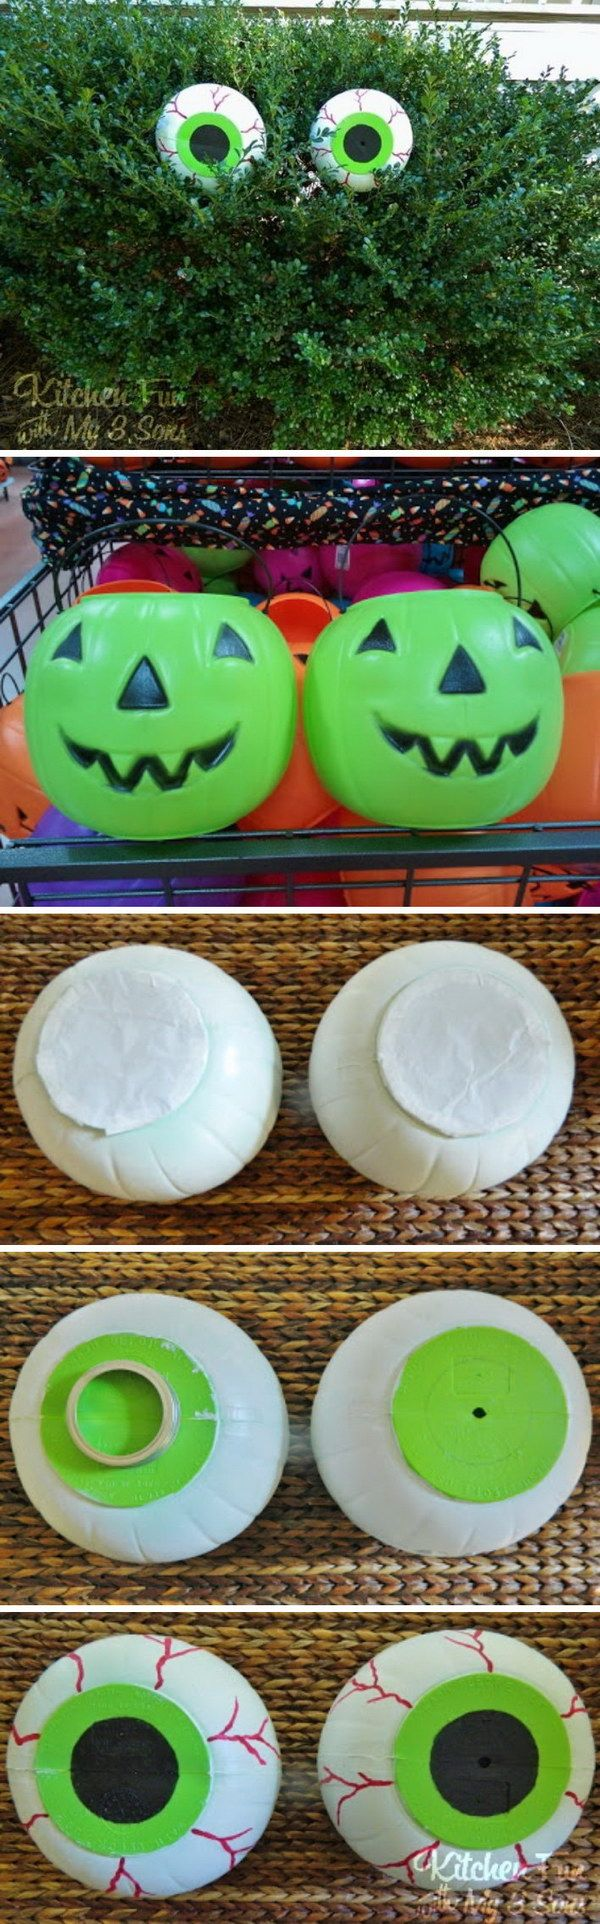 30 Dollar Store DIY Projects for Halloween. Scary Halloween  DecorationsHalloween ...